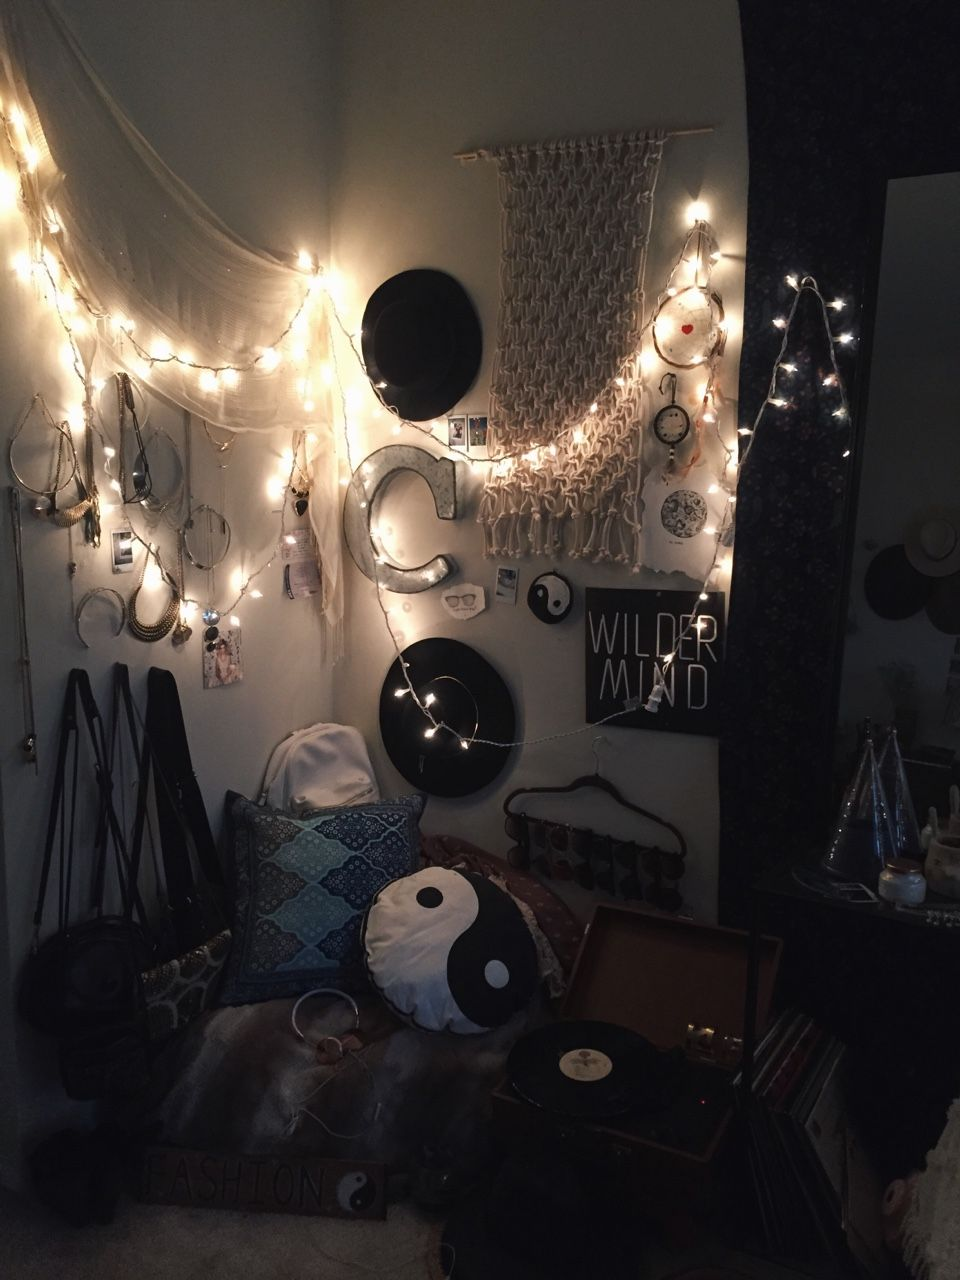 Explore Emo Bedroom, Bedroom Inspo, And More!